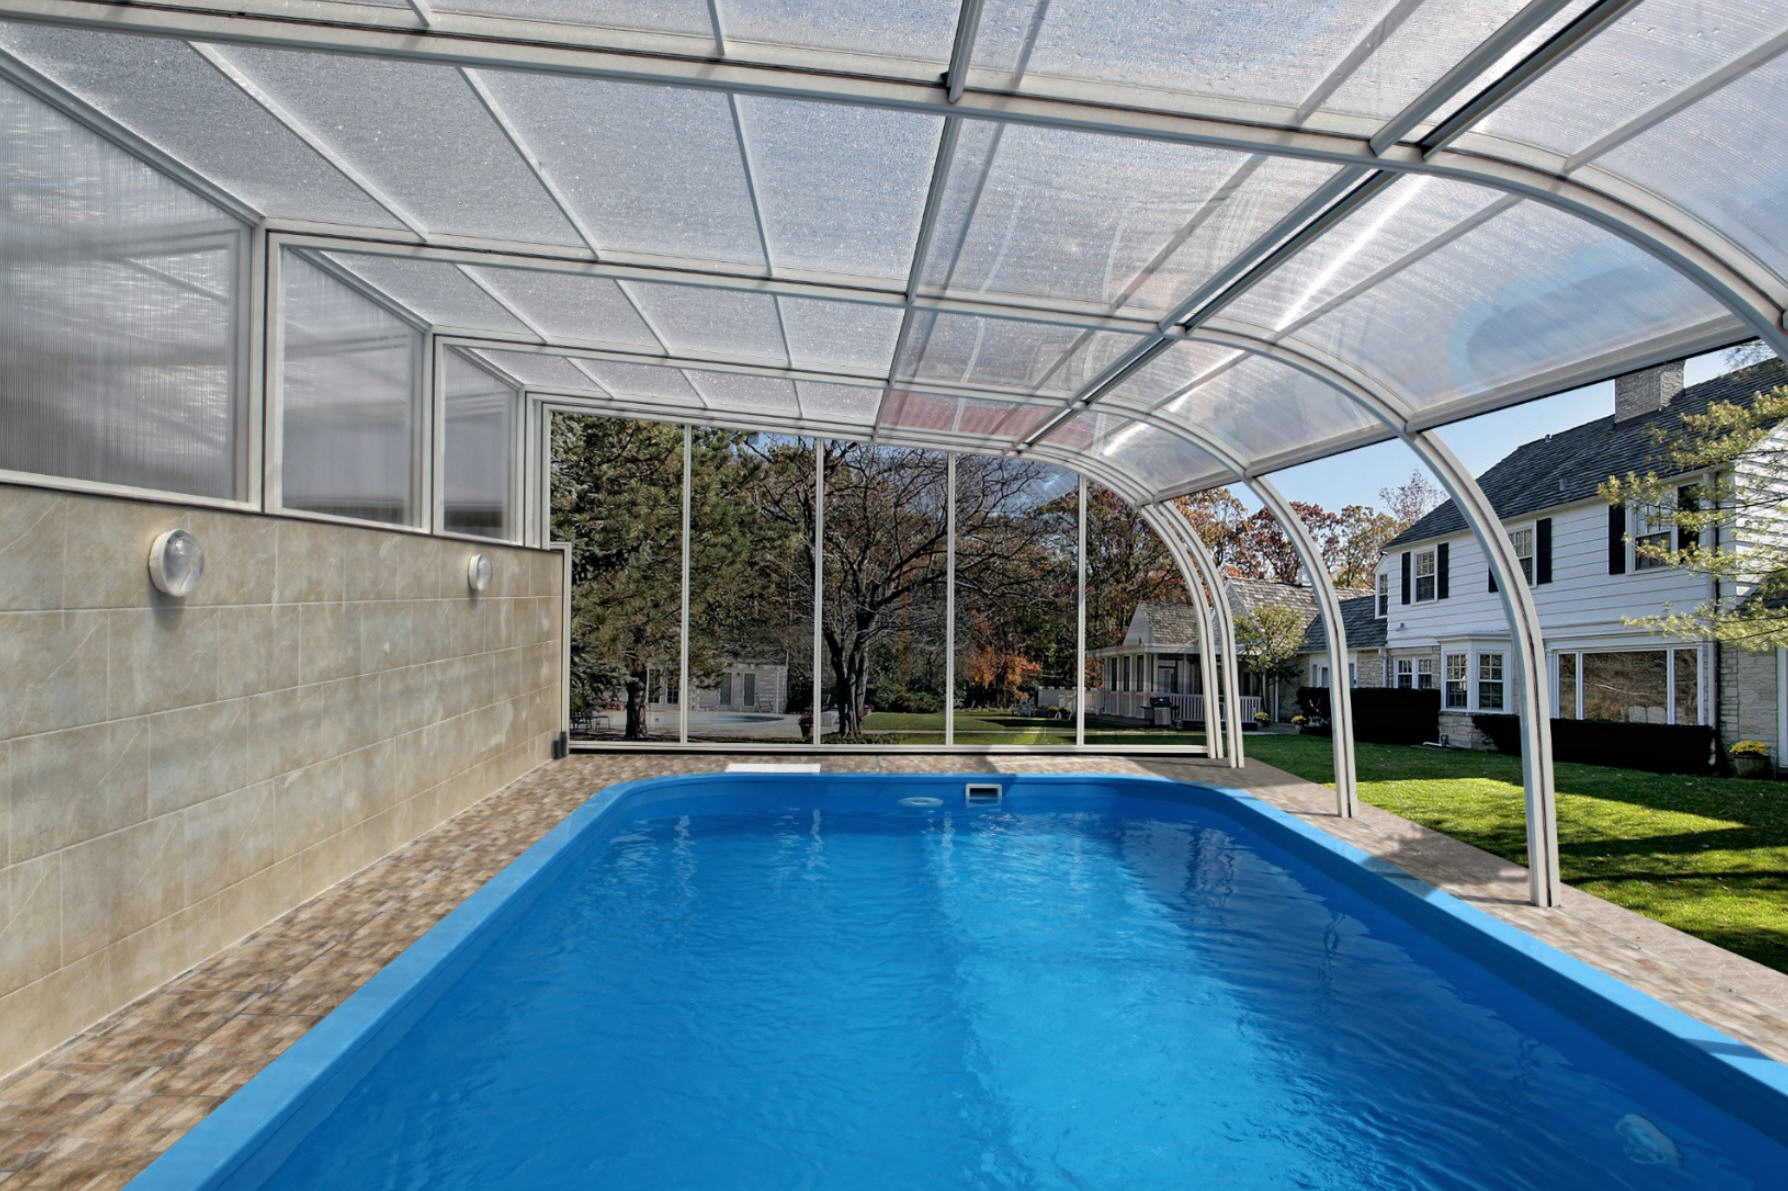 Galaxy-Fixed-Lean-To-Pool-Enclosure-06